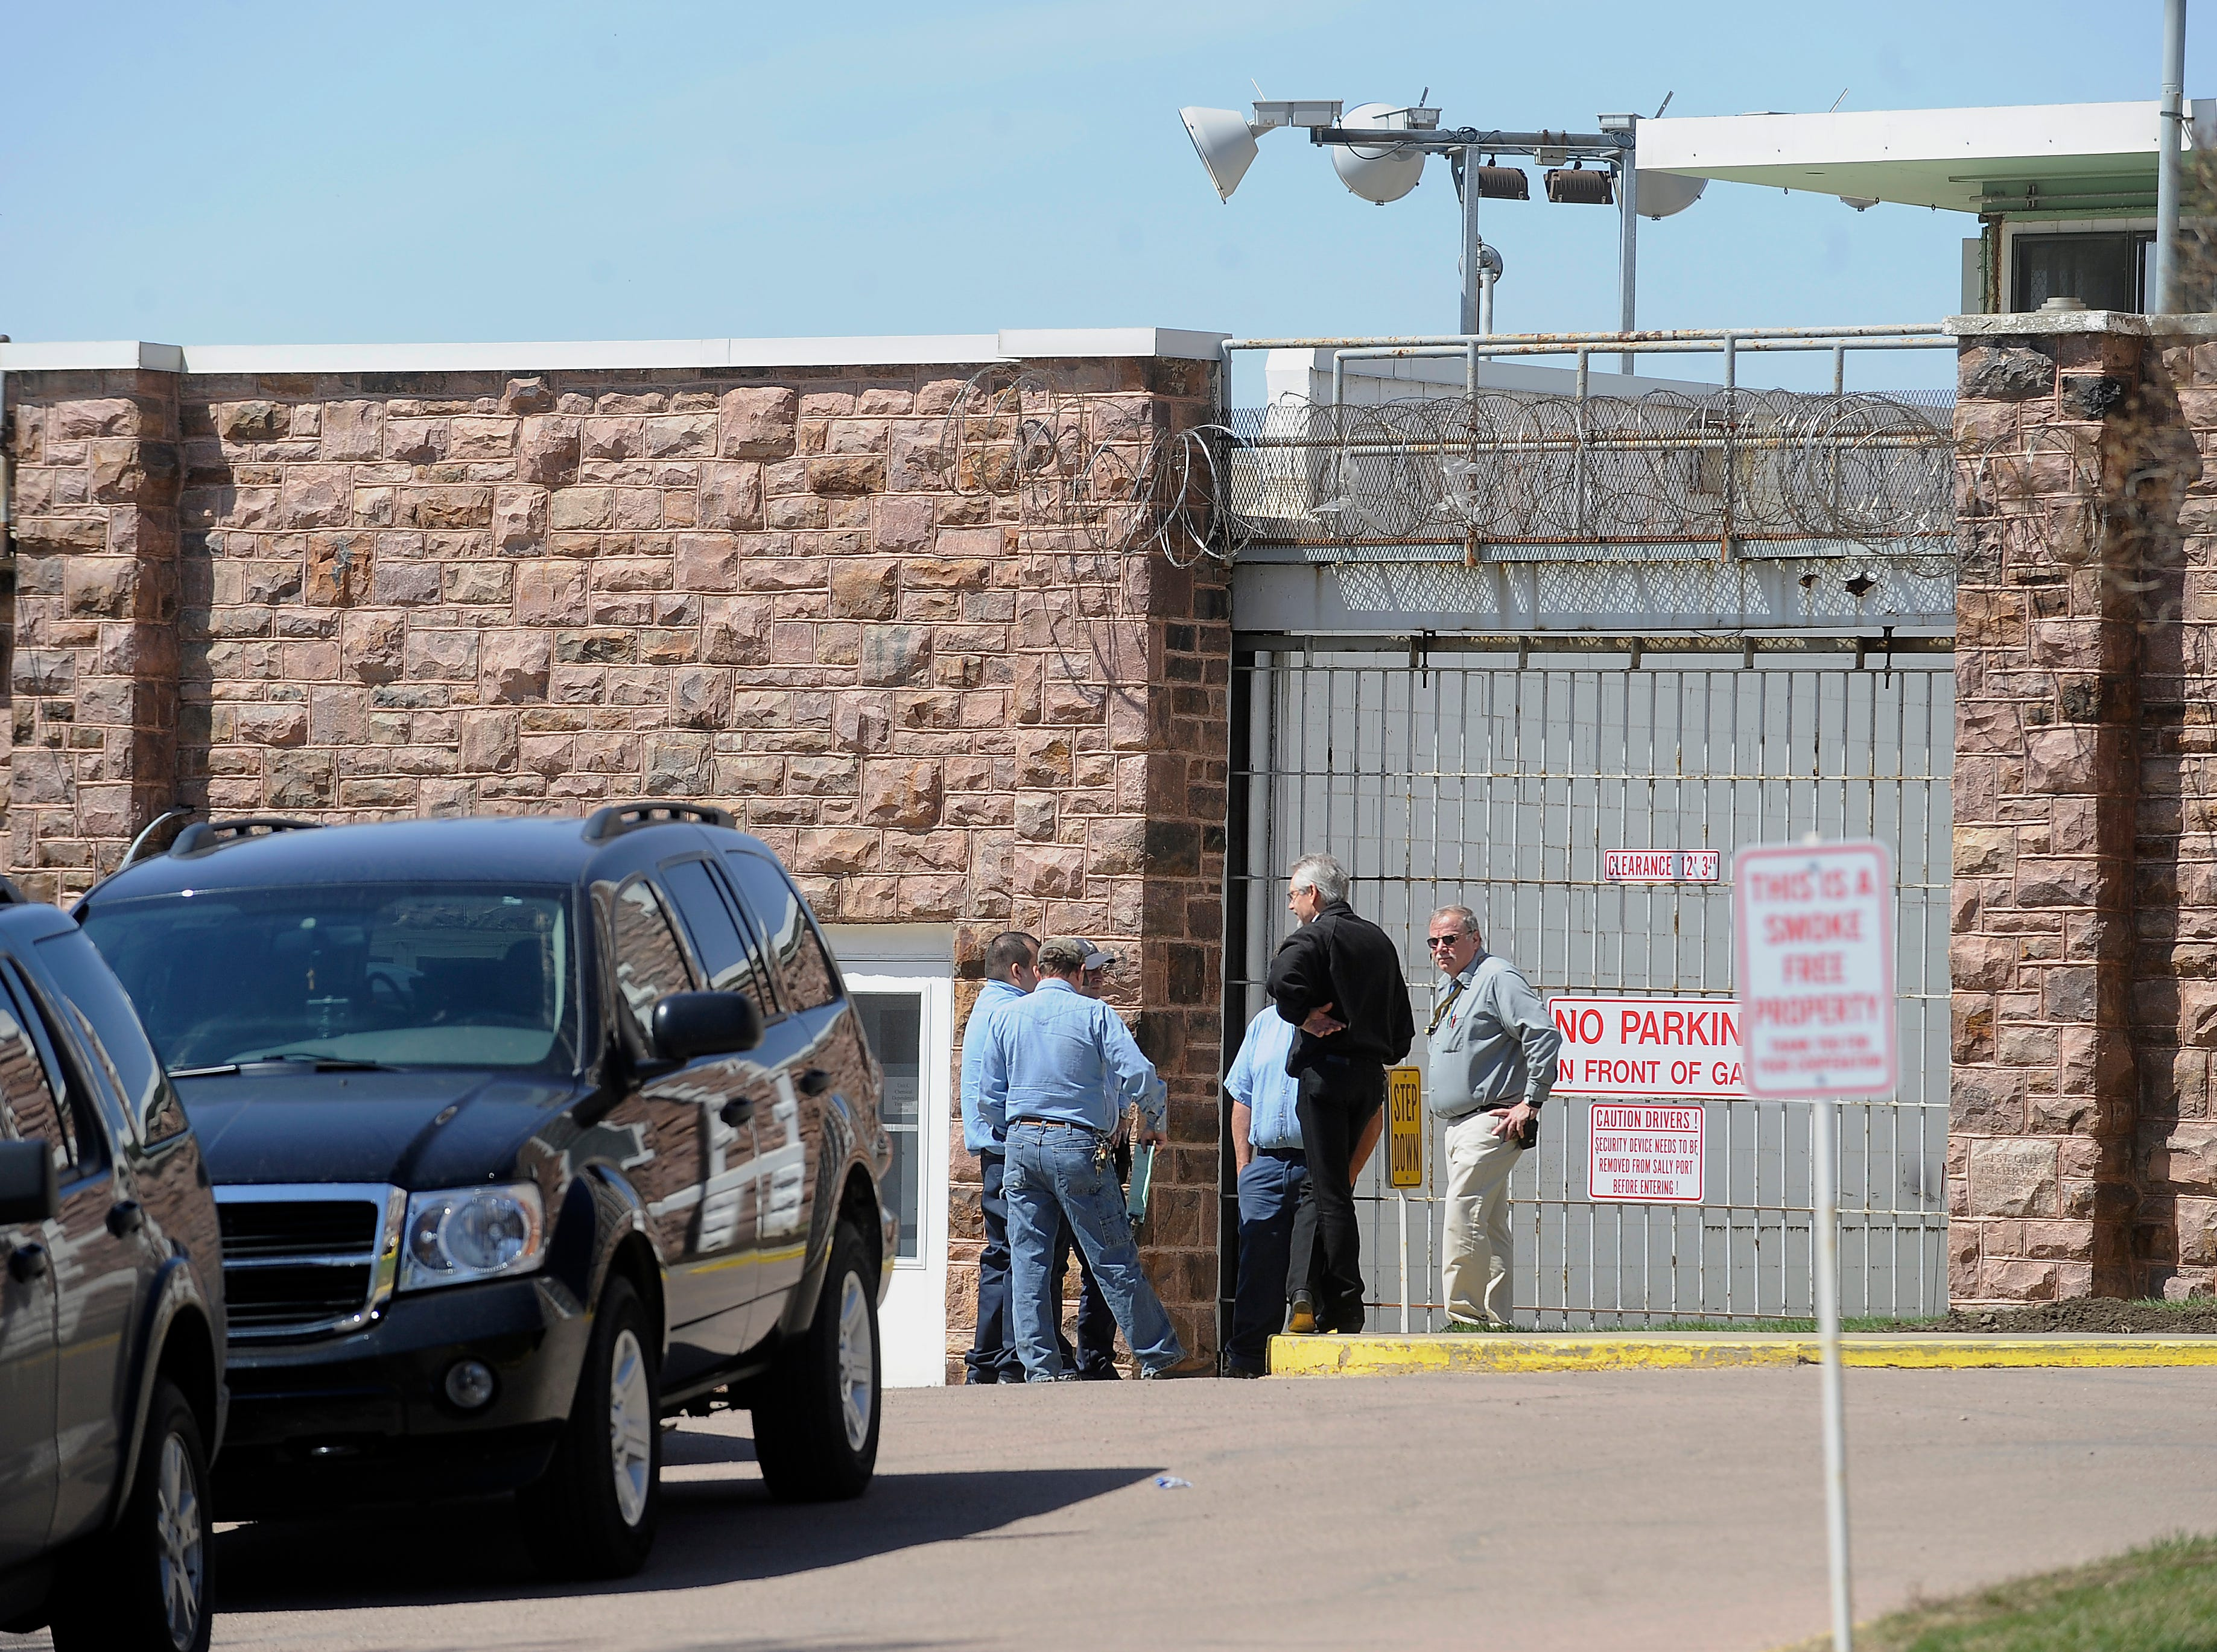 Entrance to the South Dakota State Penitentiary in Sioux Falls, S.D. Tuesday where a correctional officer was killed during an escape attempt, April 12, 2011. The officer was transported by ambulance to a Sioux Falls hospital and was pronounced dead at 11:50 a.m. Two inmates, Rodney Berget and Eric Robert, were apprehended within the confines of the prison grounds during the escape attempt just before 11 a.m. (Elisha Page/Argus Leader)